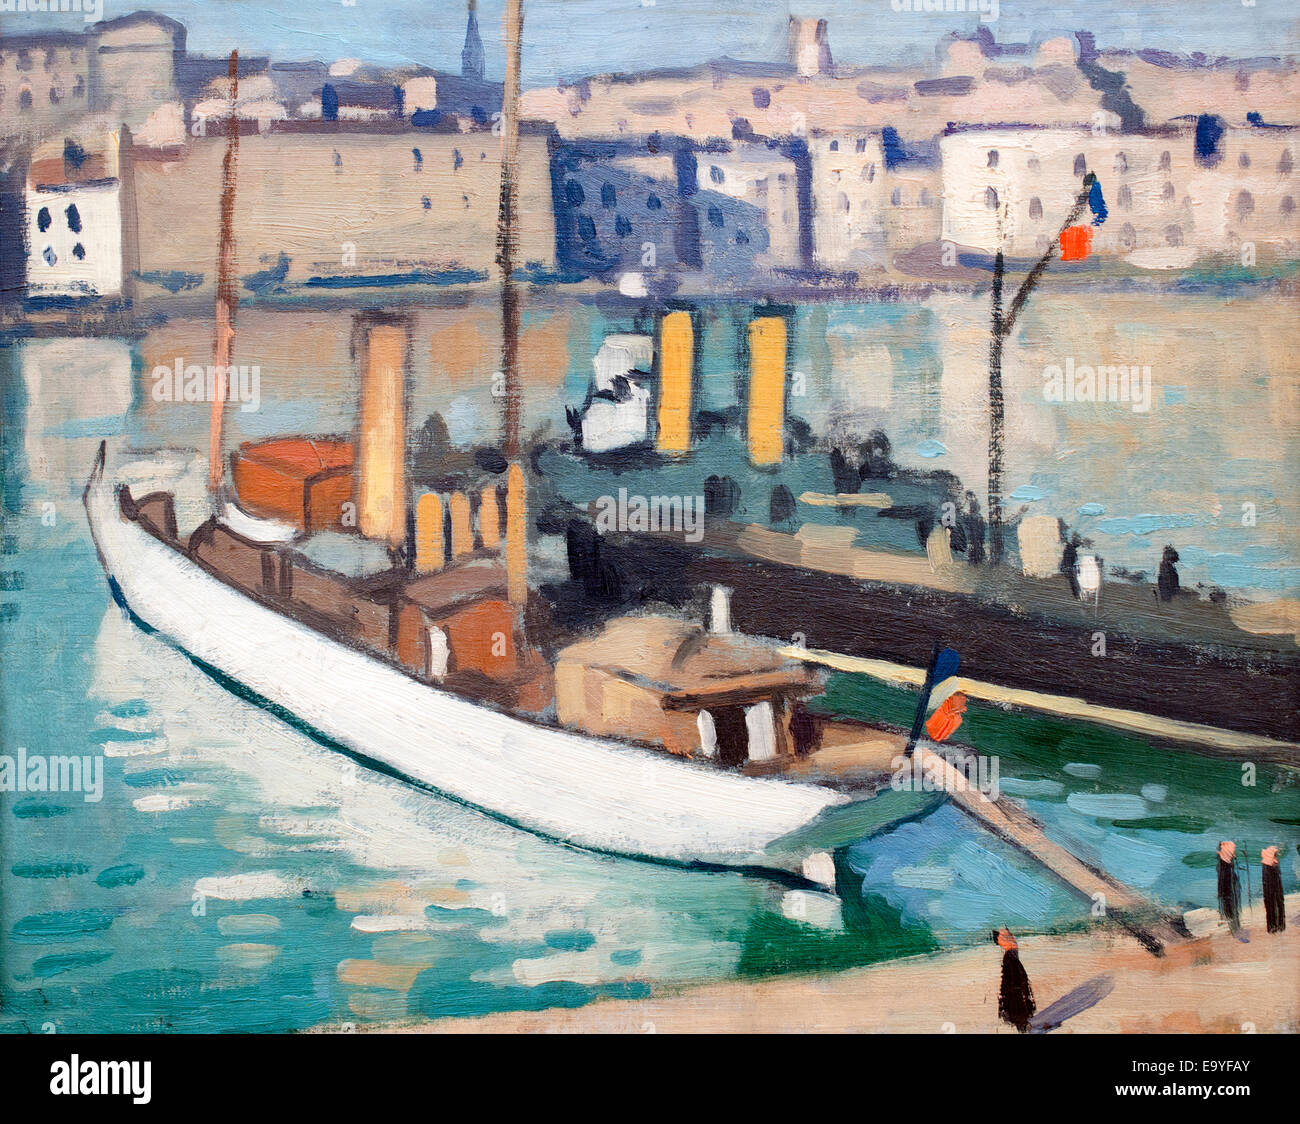 Bateaux patrouilleurs - Patrol boats in 1915 Albert Marquet 1875-1947 France French - Stock Image